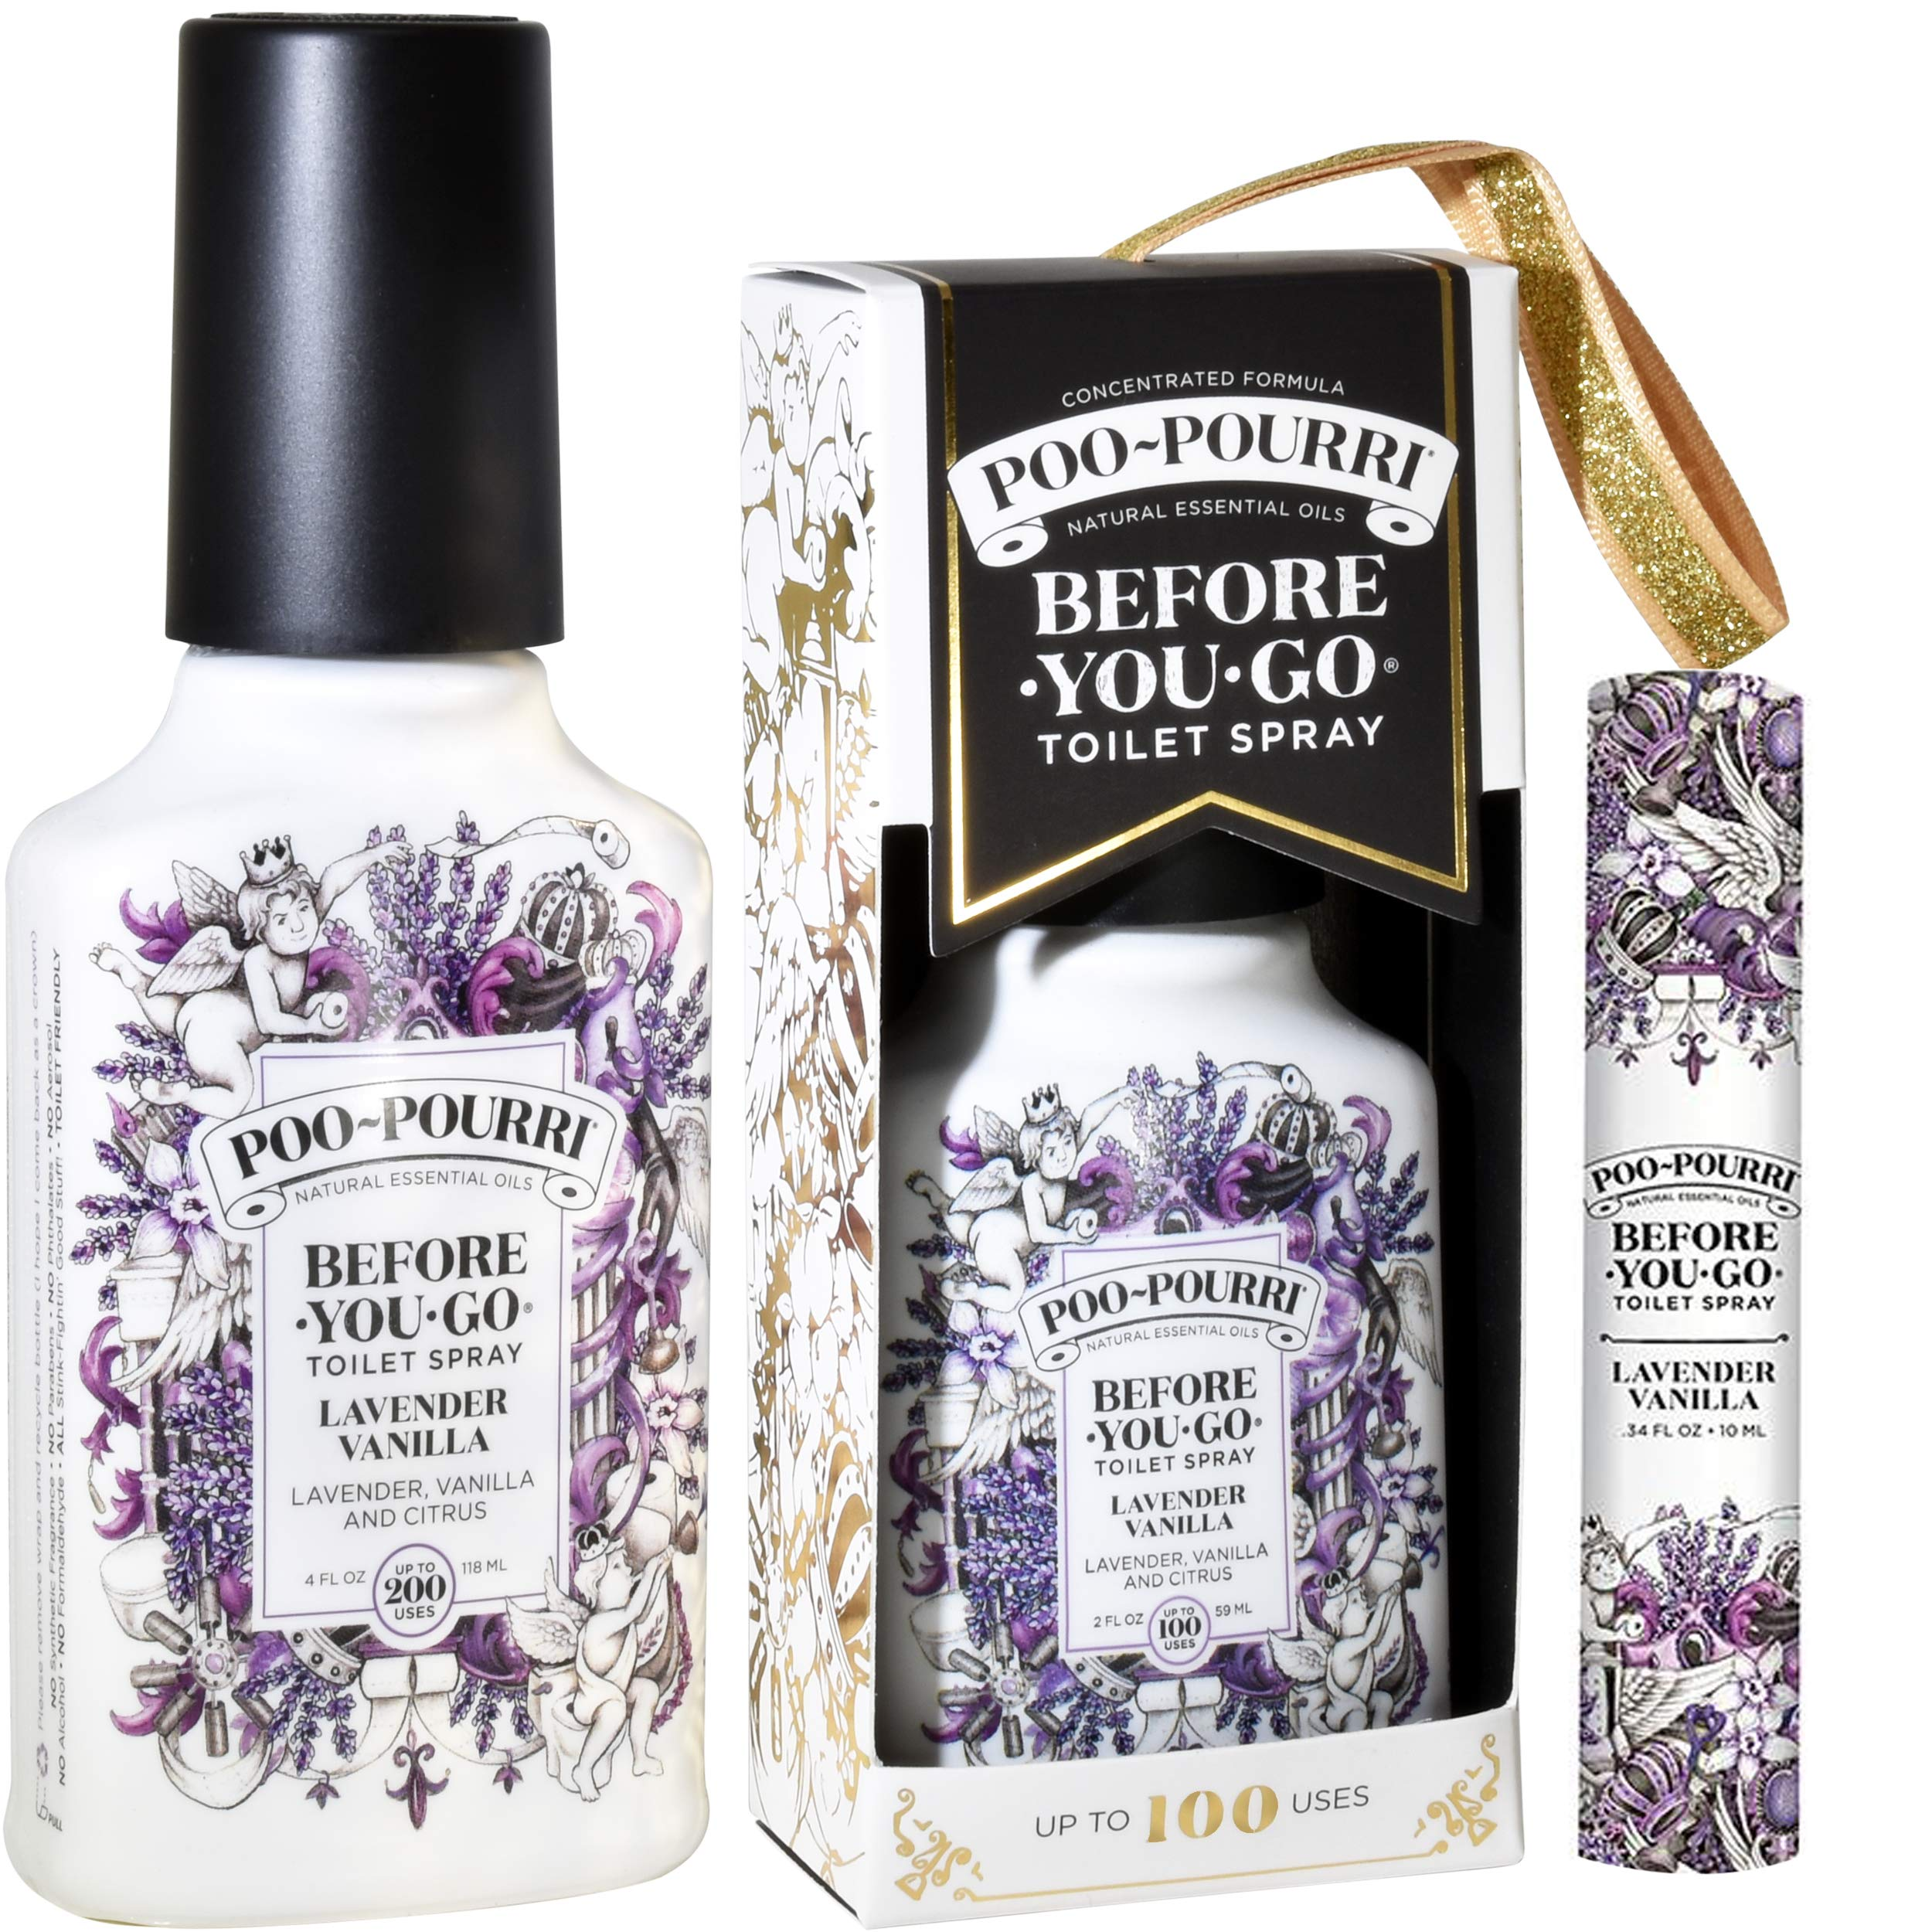 Poo-Pourri Lavender Vanilla 2 Ounce, 4 Ounce, Travel Size Spritzer, and Box by Poo-Pourri (Image #4)